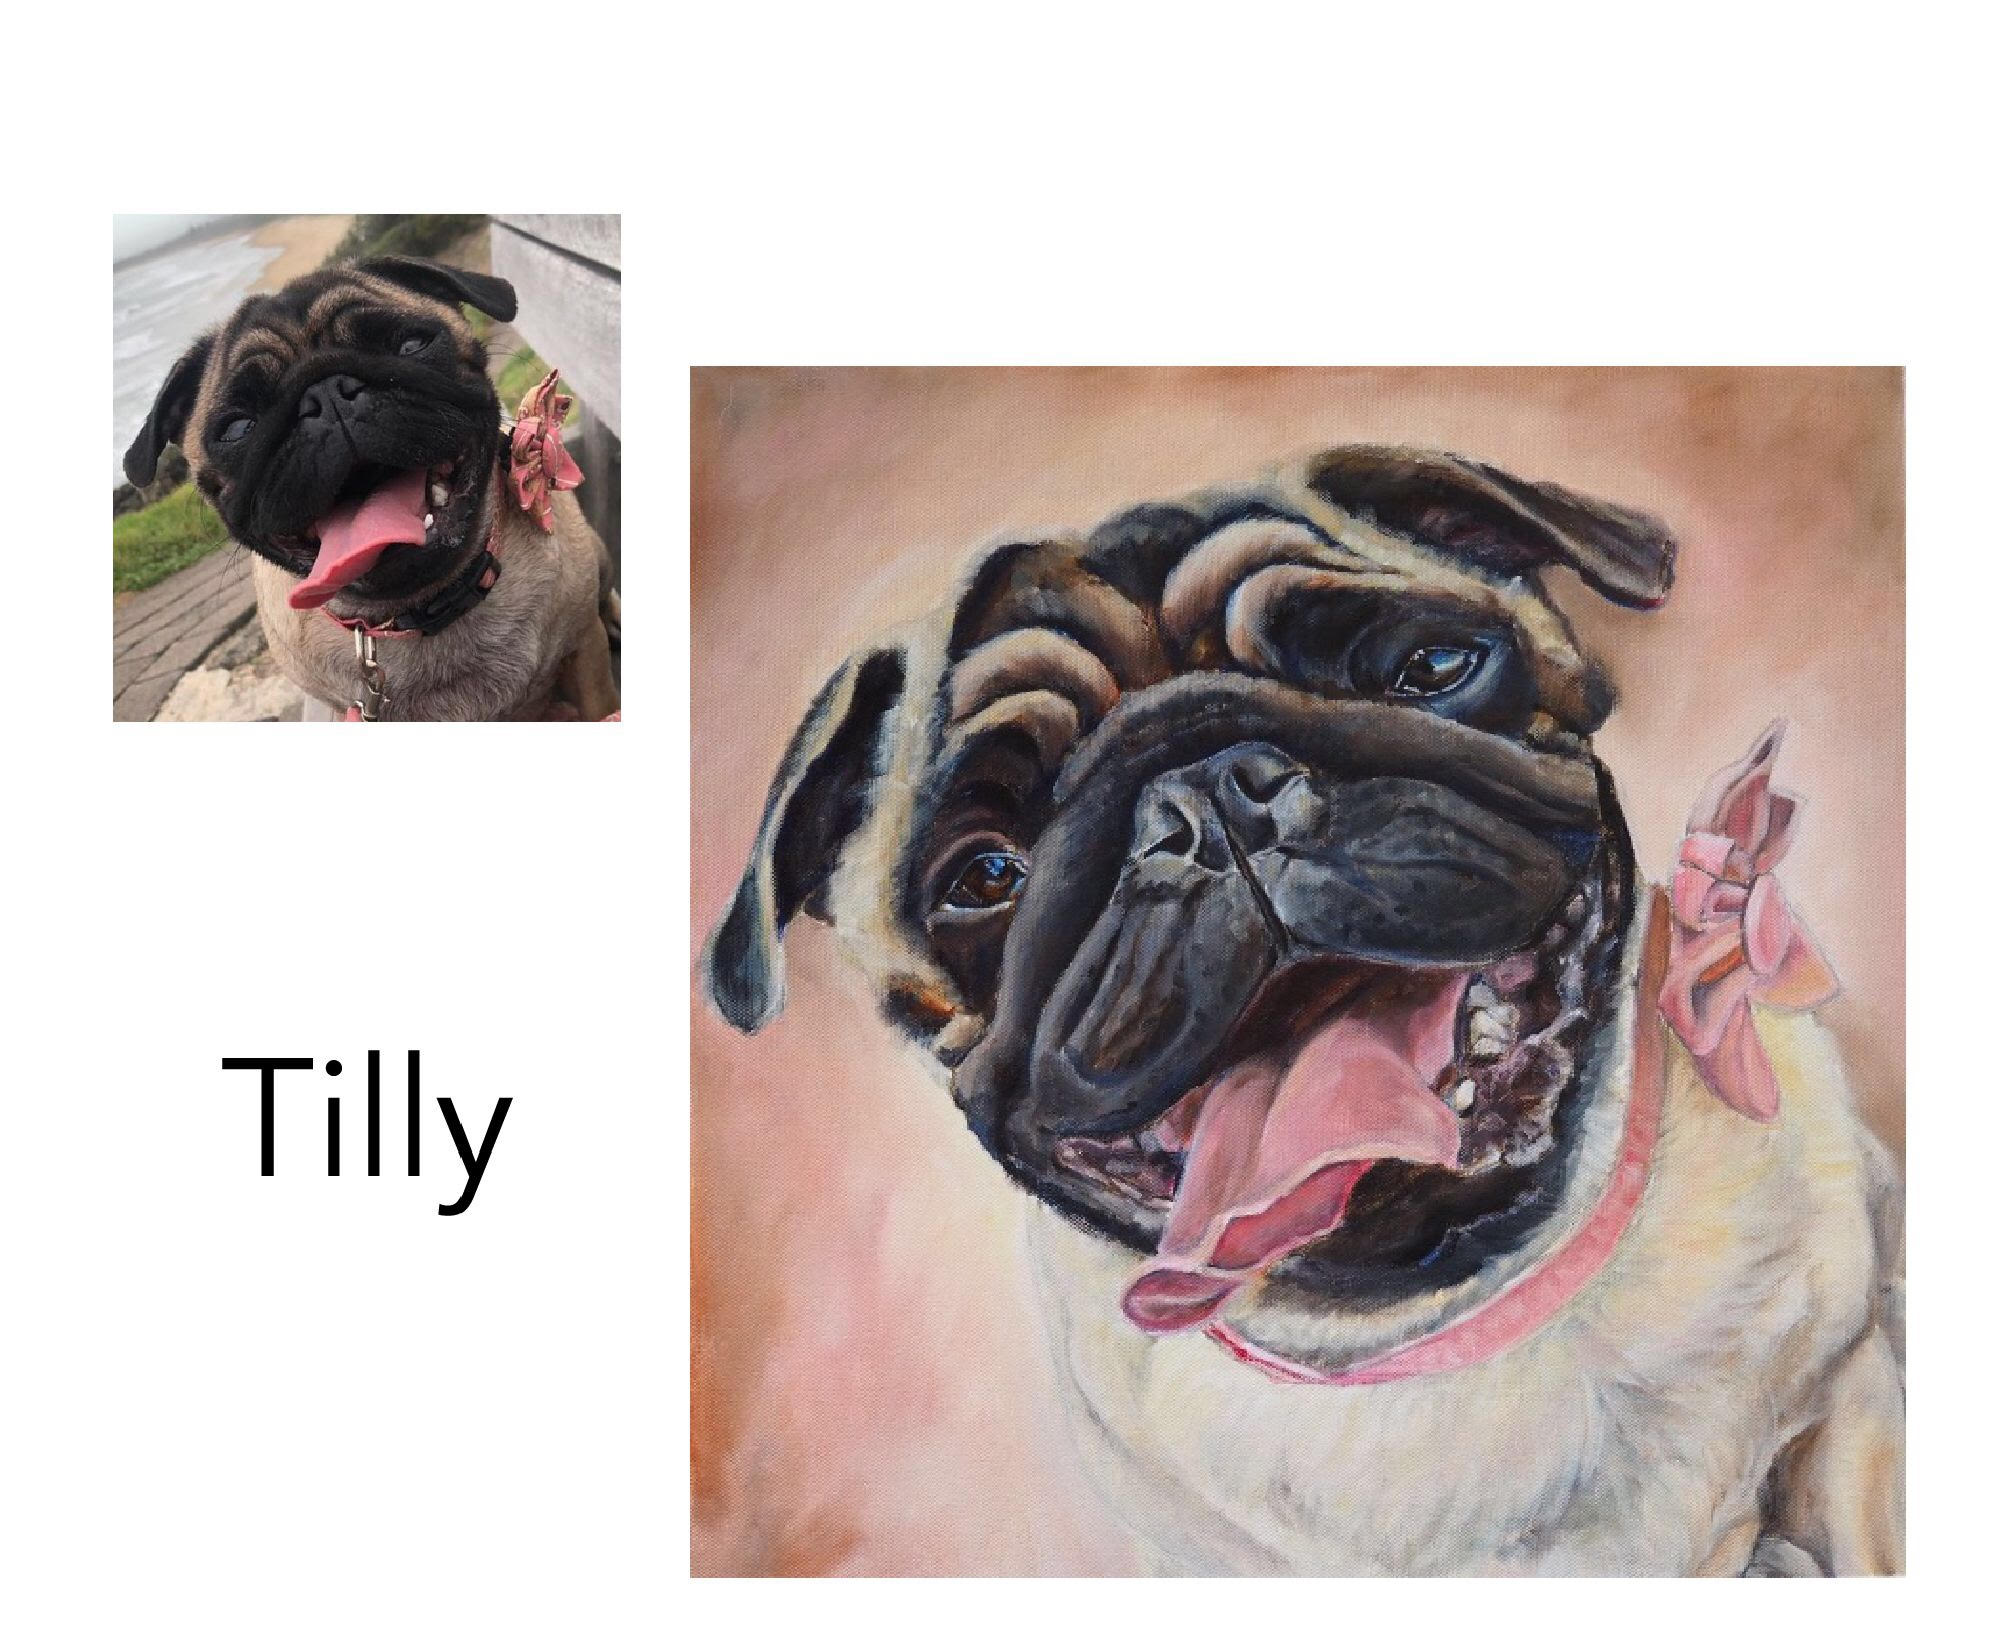 """Pug - Acrylic and oil on canvas 18"""" x 18"""" (46cm x 46cm)Private commissionSawtell, NSW—————————————-Tilly loves wearing pretty attire custom made for her by her Mum. She is the sunshine in the lives of her humans"""